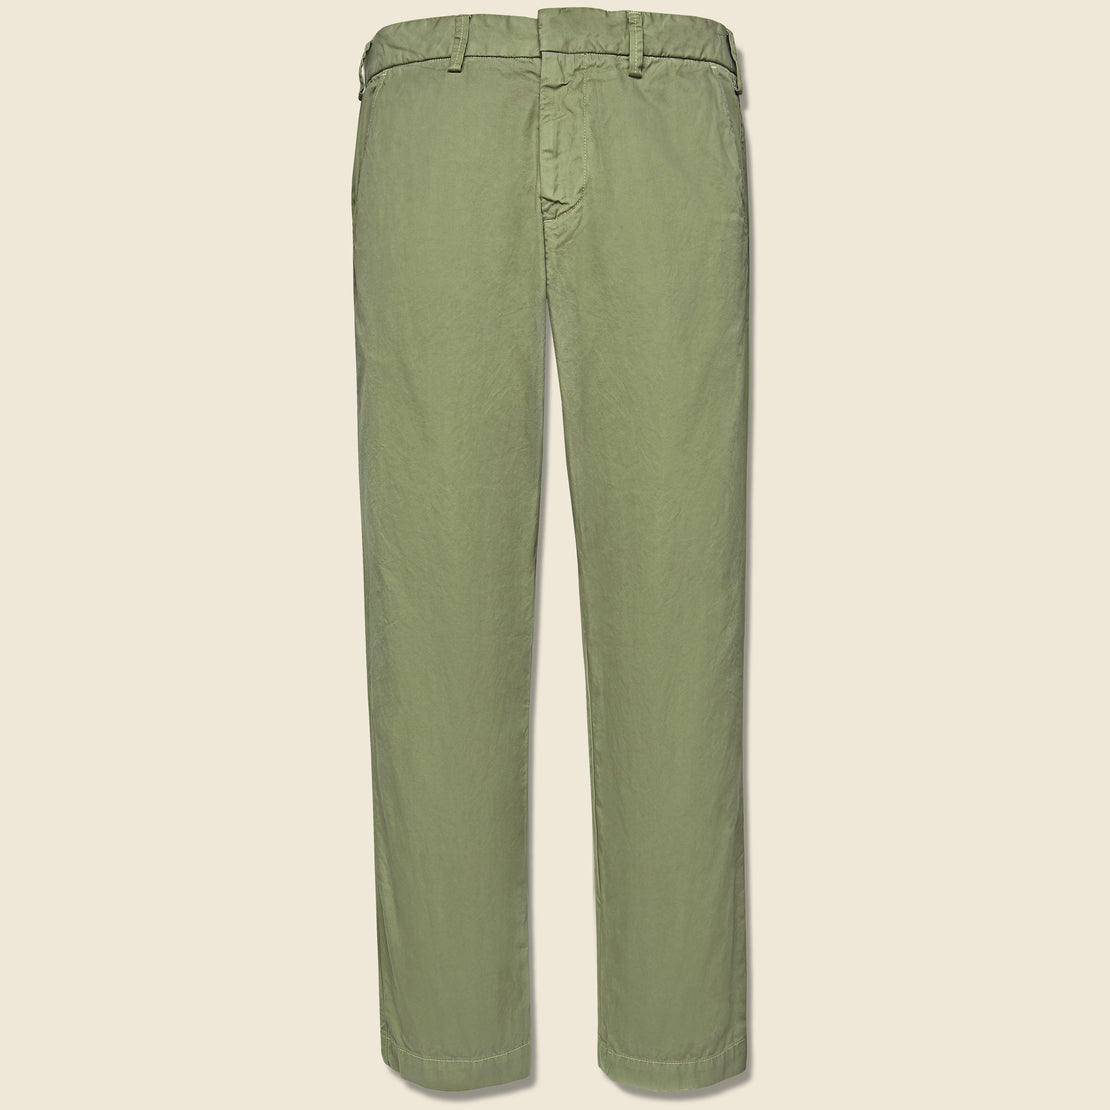 Save Khaki Light Twill Trouser - Fatigue